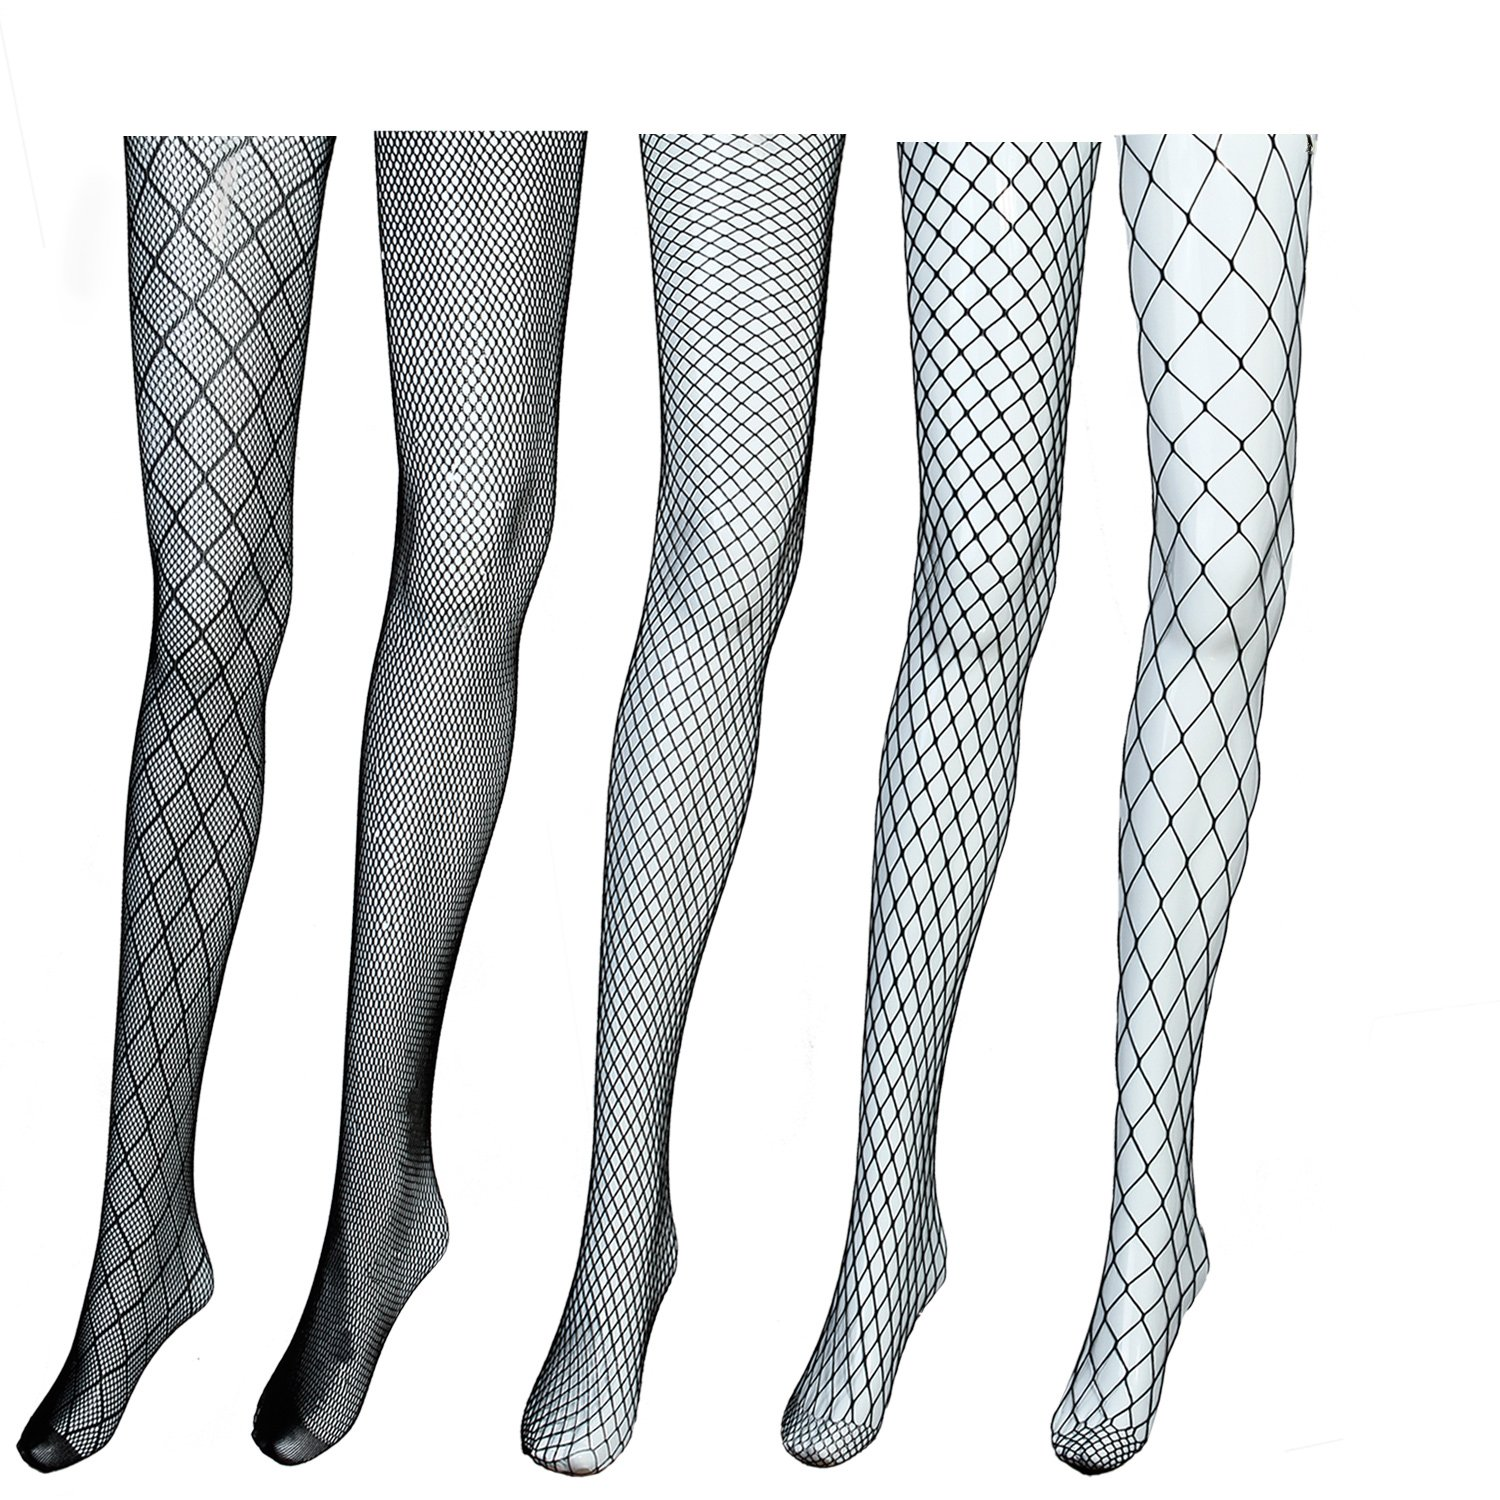 7e8e5d64b86388 ... rhombuses with small mesh, medium mesh, large mesh and ultra large  mesh, different choices fit your different purposes. Trendy and sexy  fishnet tights: ...